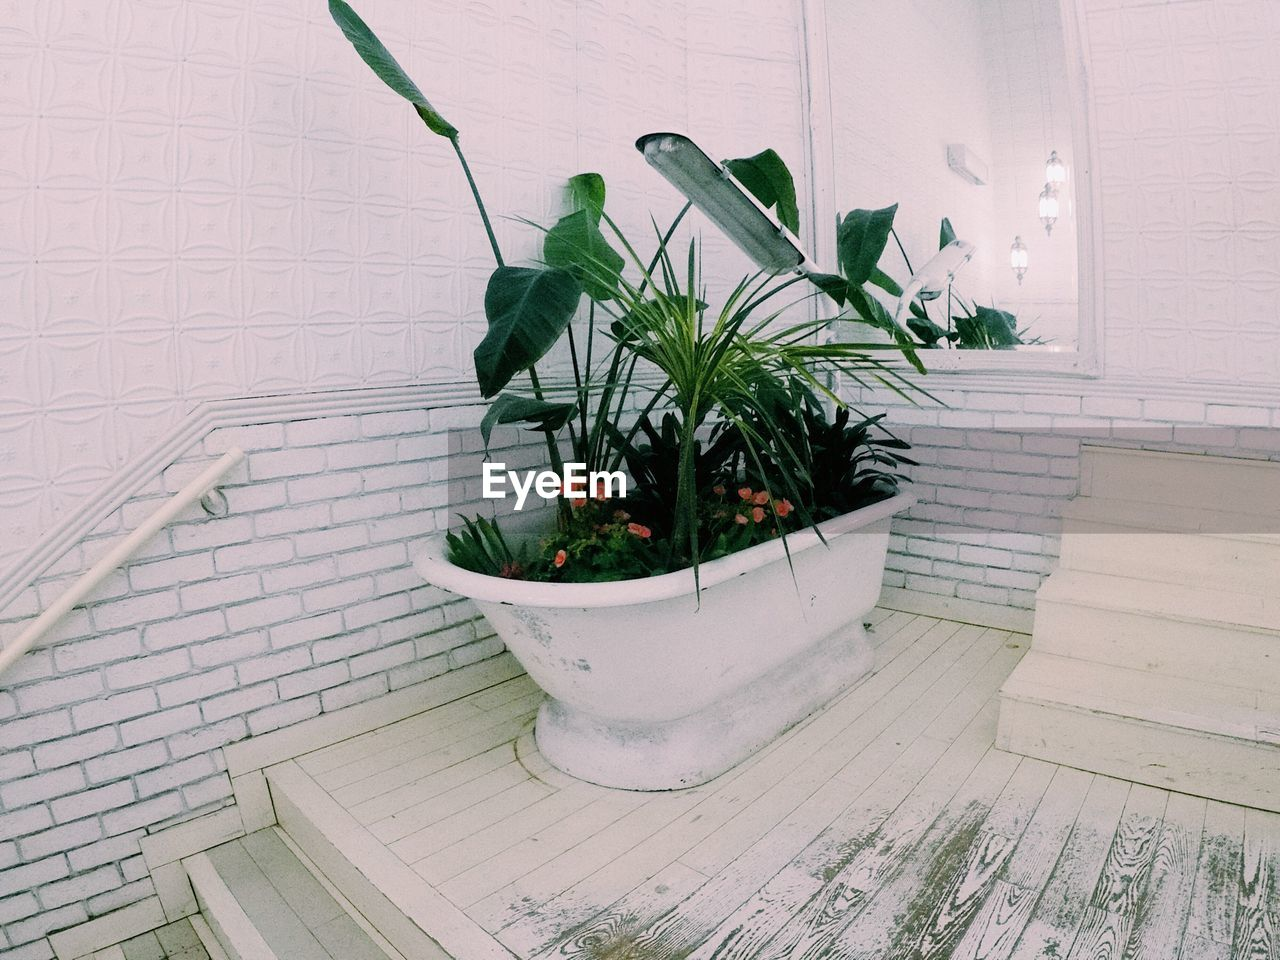 plant, growth, potted plant, nature, green color, architecture, no people, plant part, leaf, wall - building feature, indoors, built structure, day, beauty in nature, flooring, flower pot, white color, high angle view, wood - material, houseplant